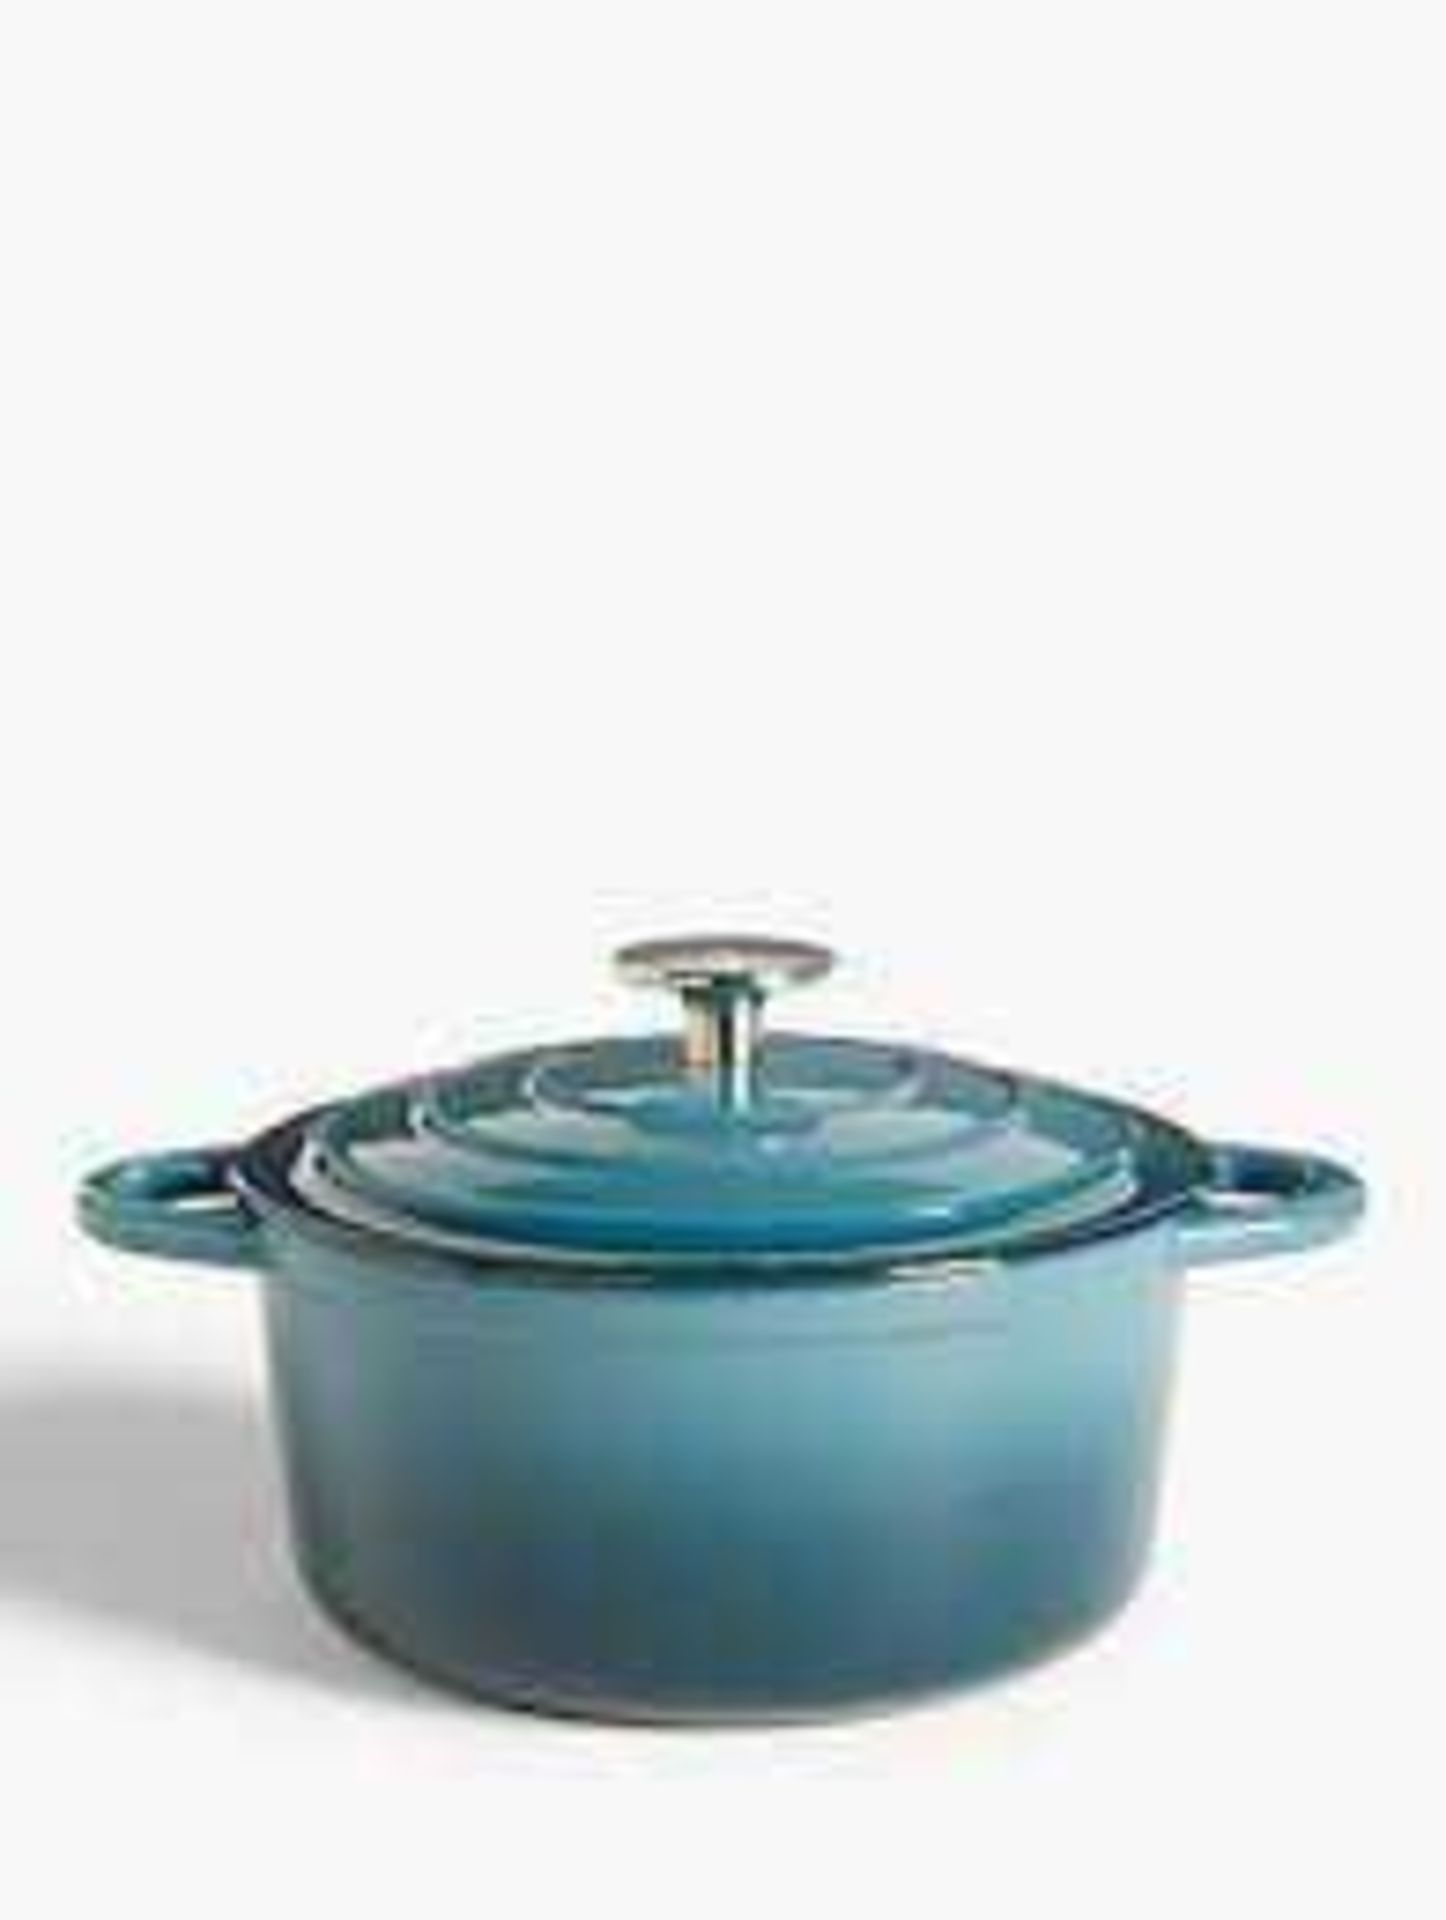 RRP £60 Boxed John Lewis Cast Iron 31Cm Shallow Casserole Dish With Lid